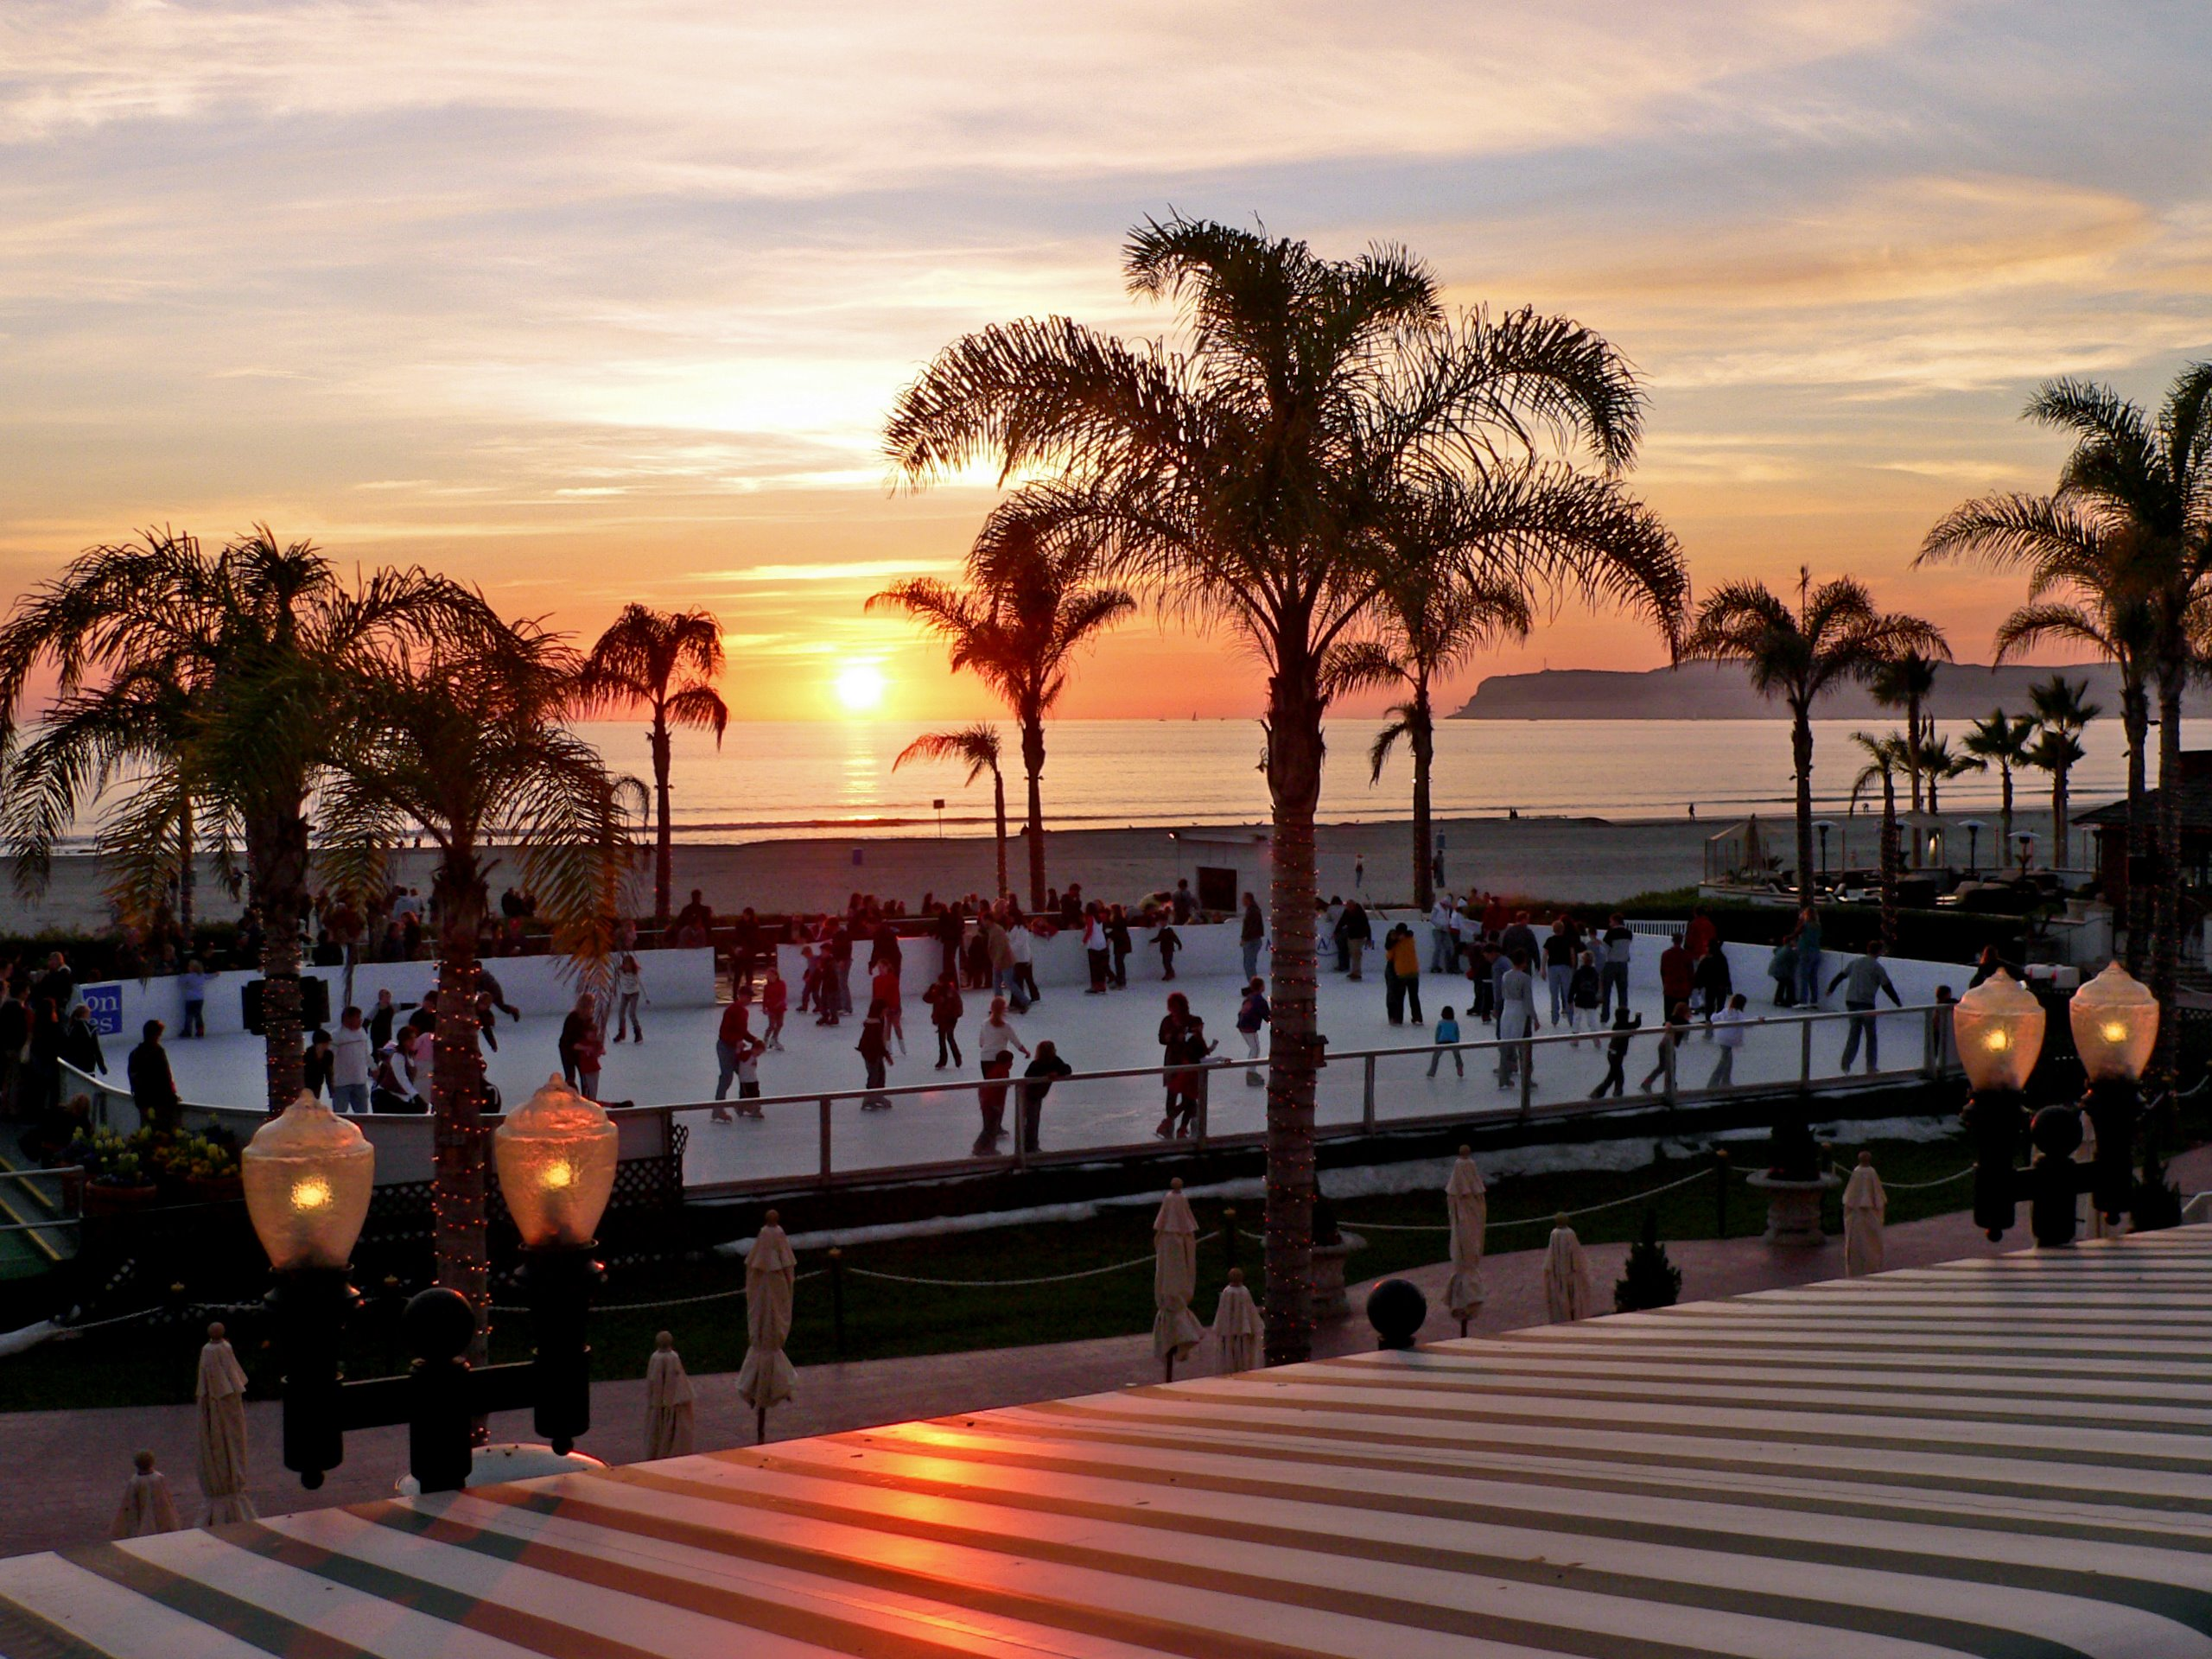 Ice Rink By The Sea